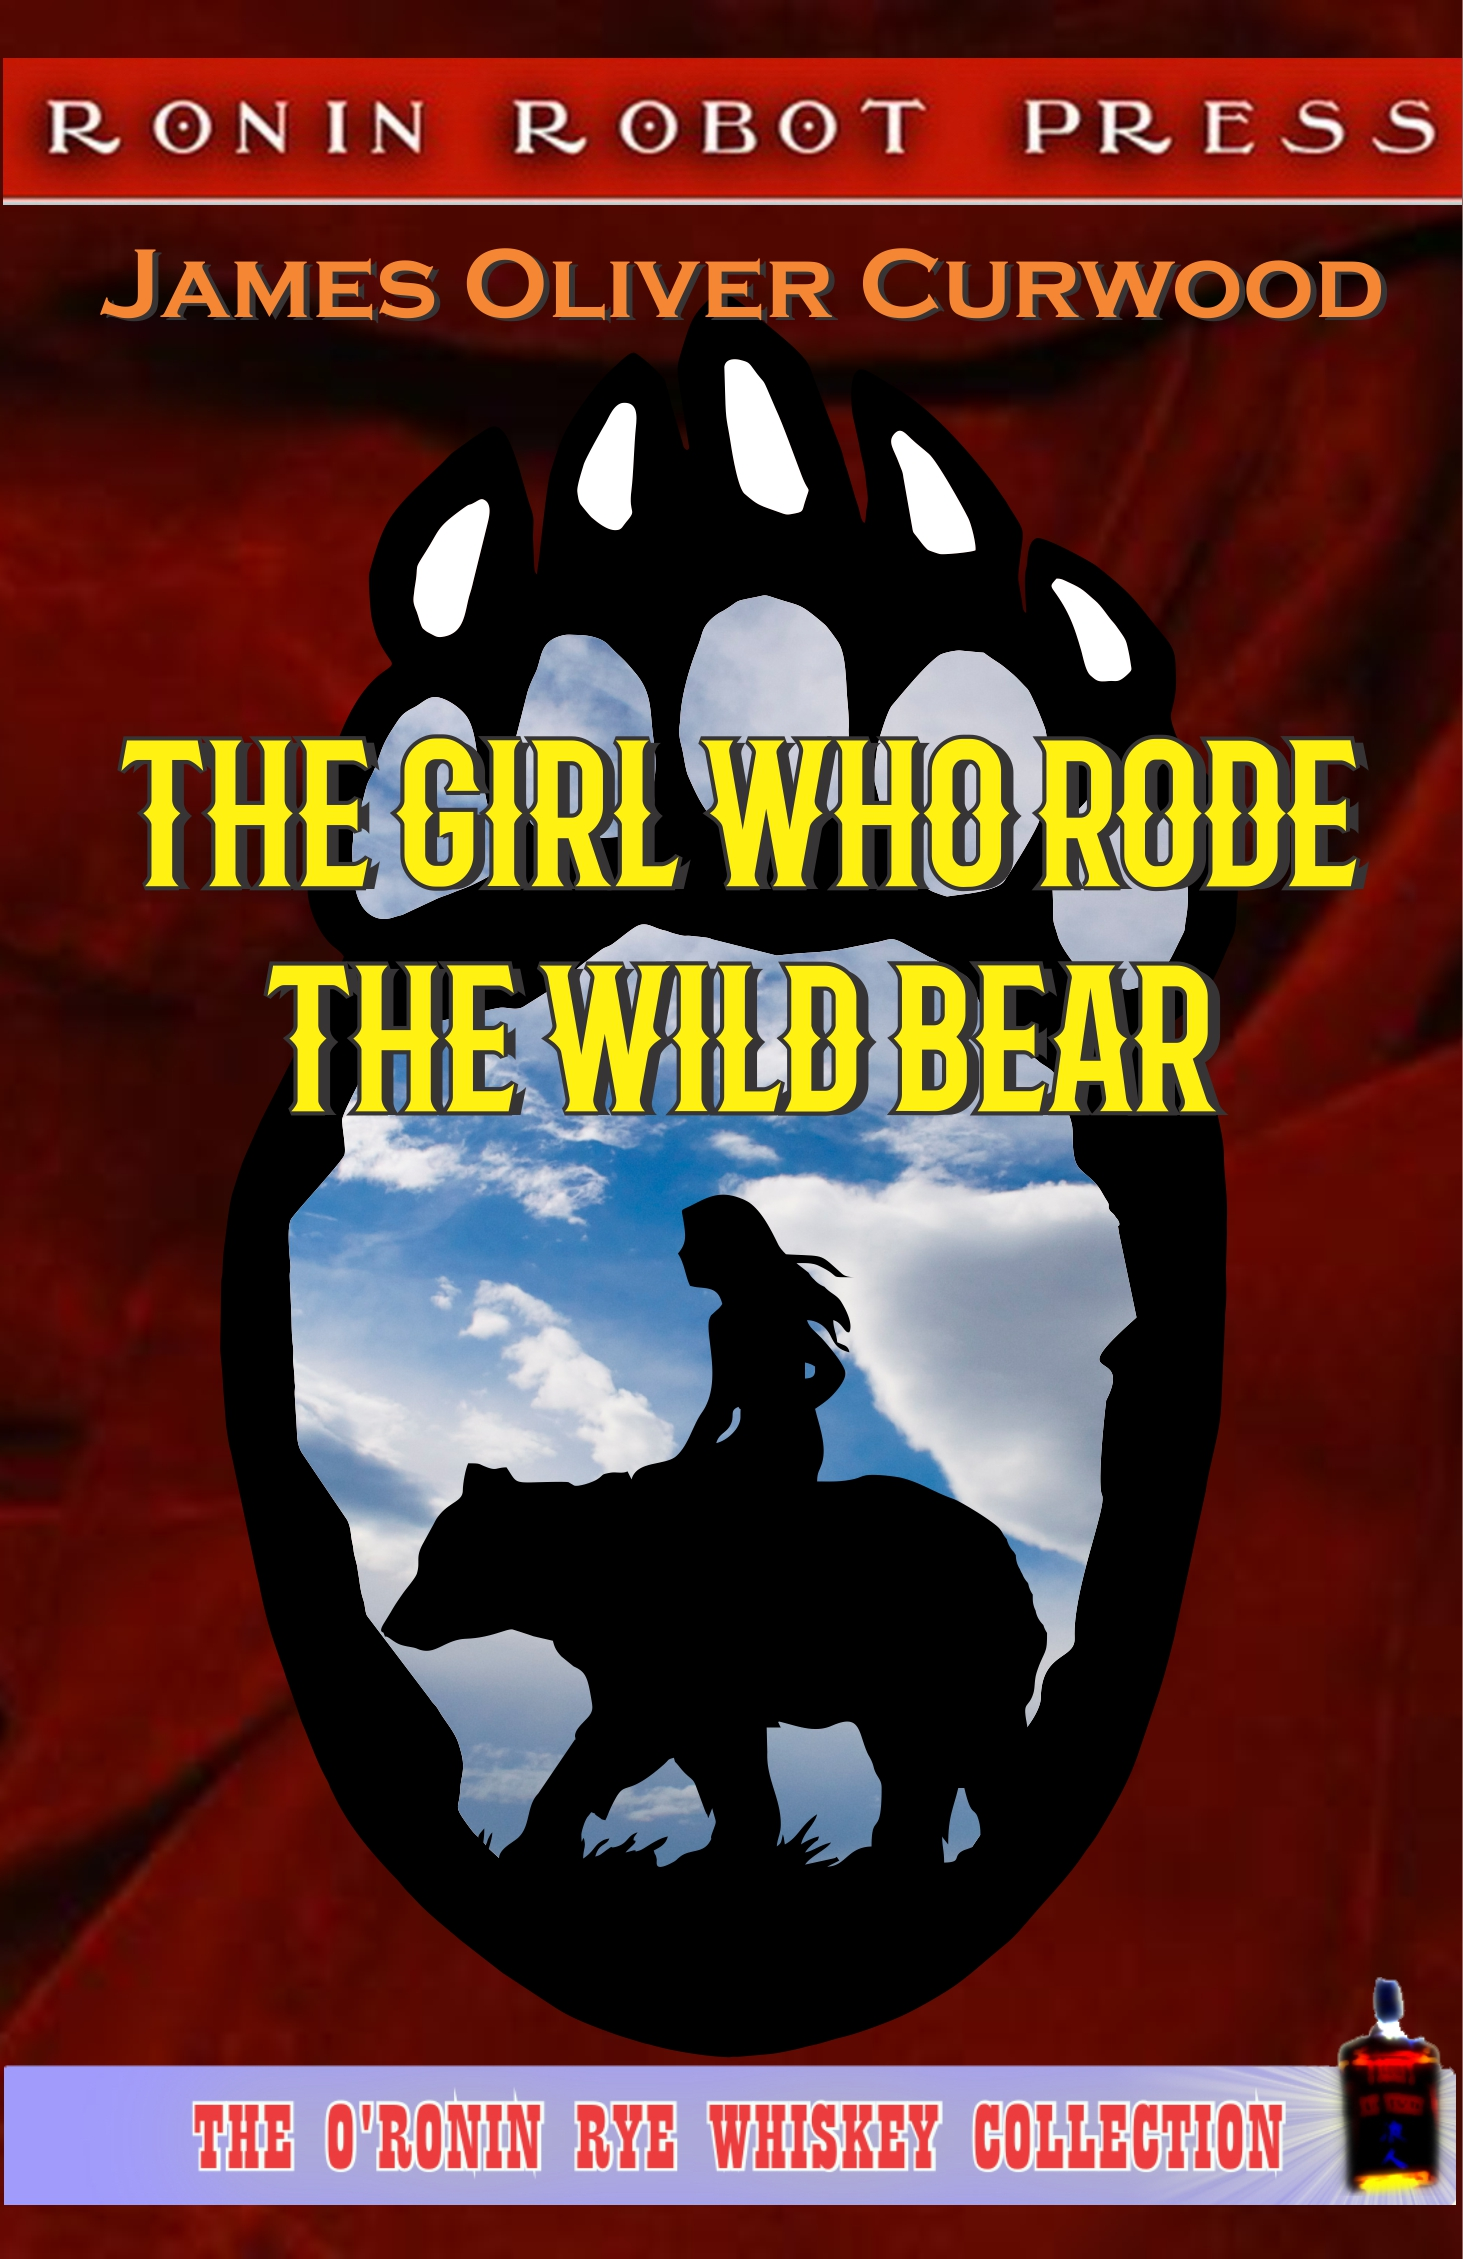 The Girl Who Rode the Wild Bear